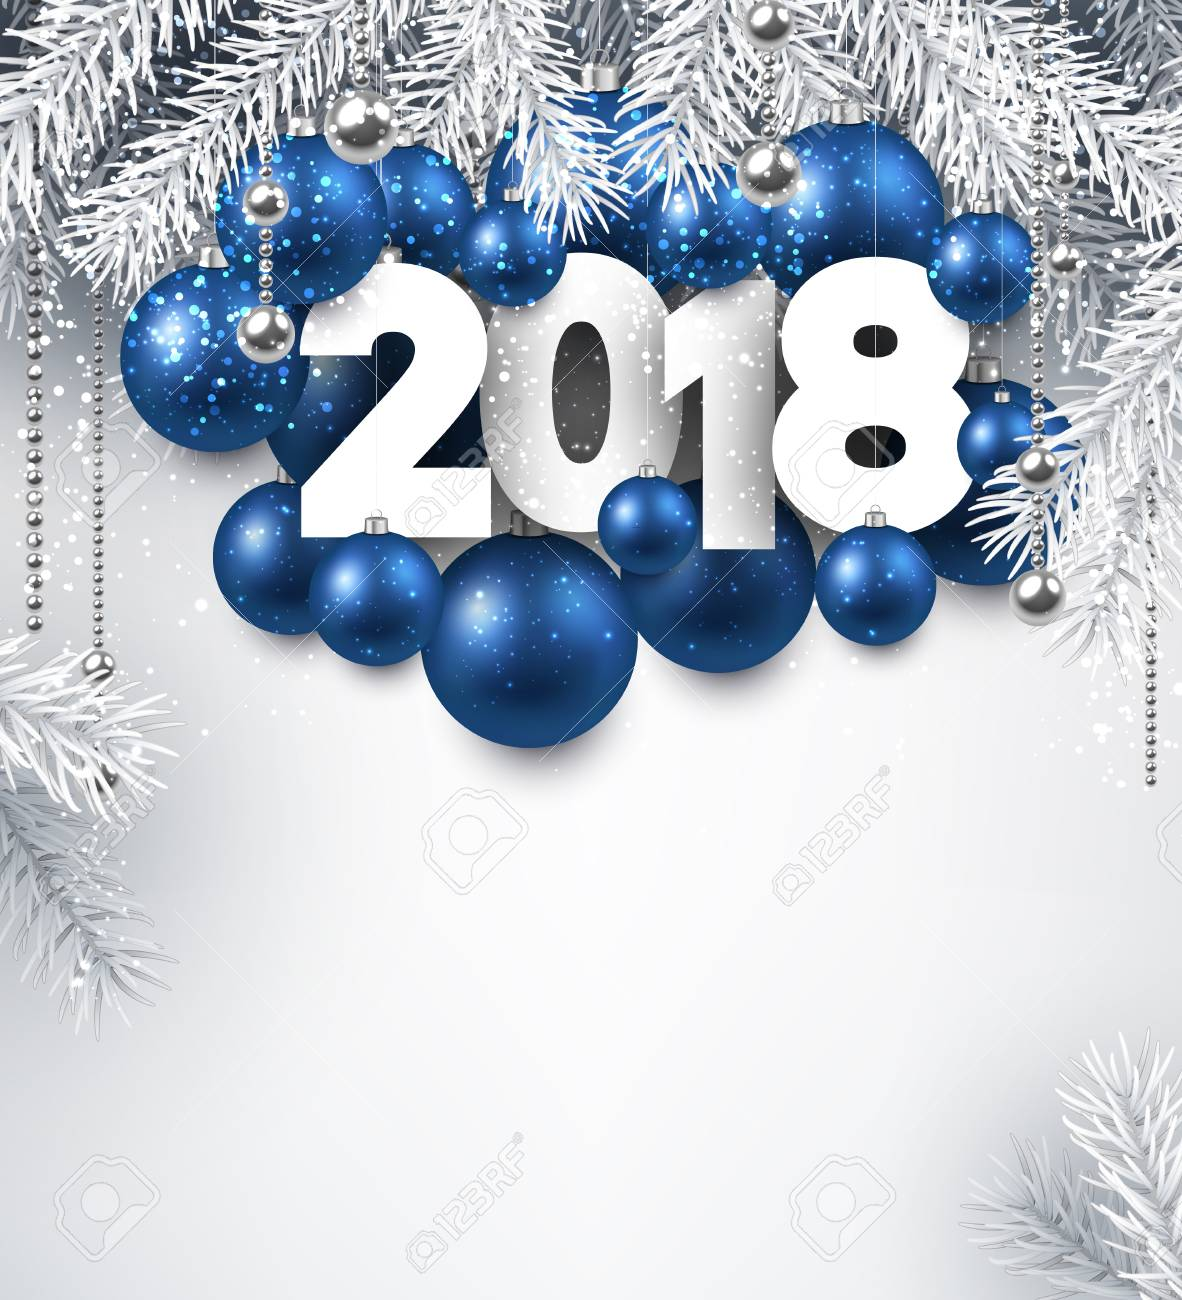 2018 new year background with blue christmas balls vector illustration stock vector 87882590